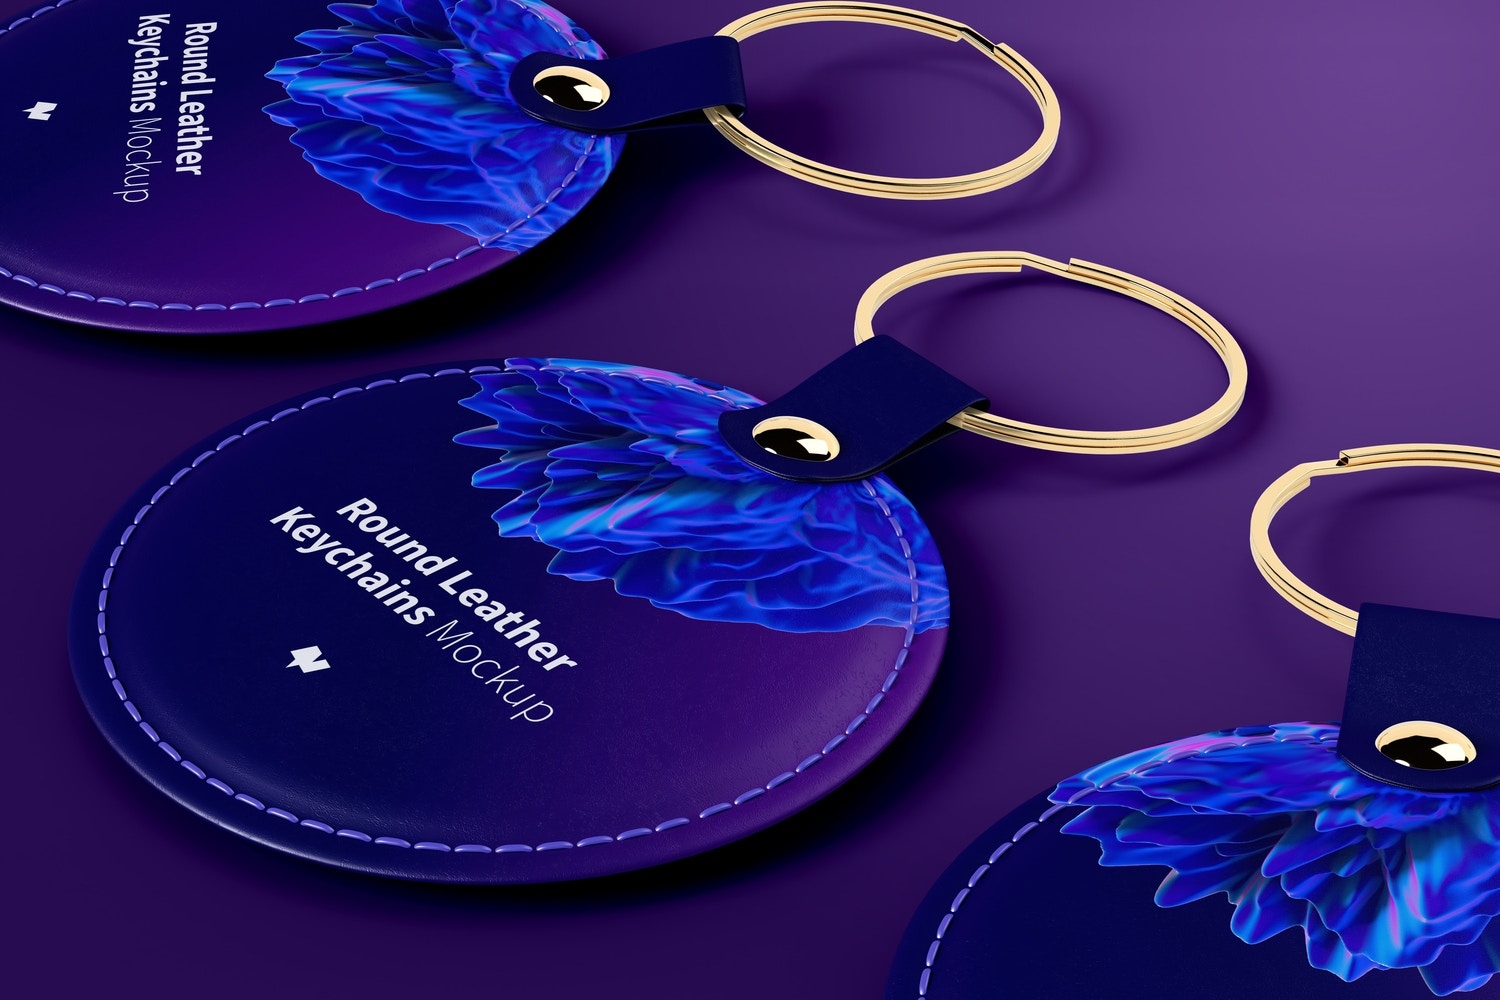 With this mockup, you can promote brand elements, corporate logos, and advertising pieces.